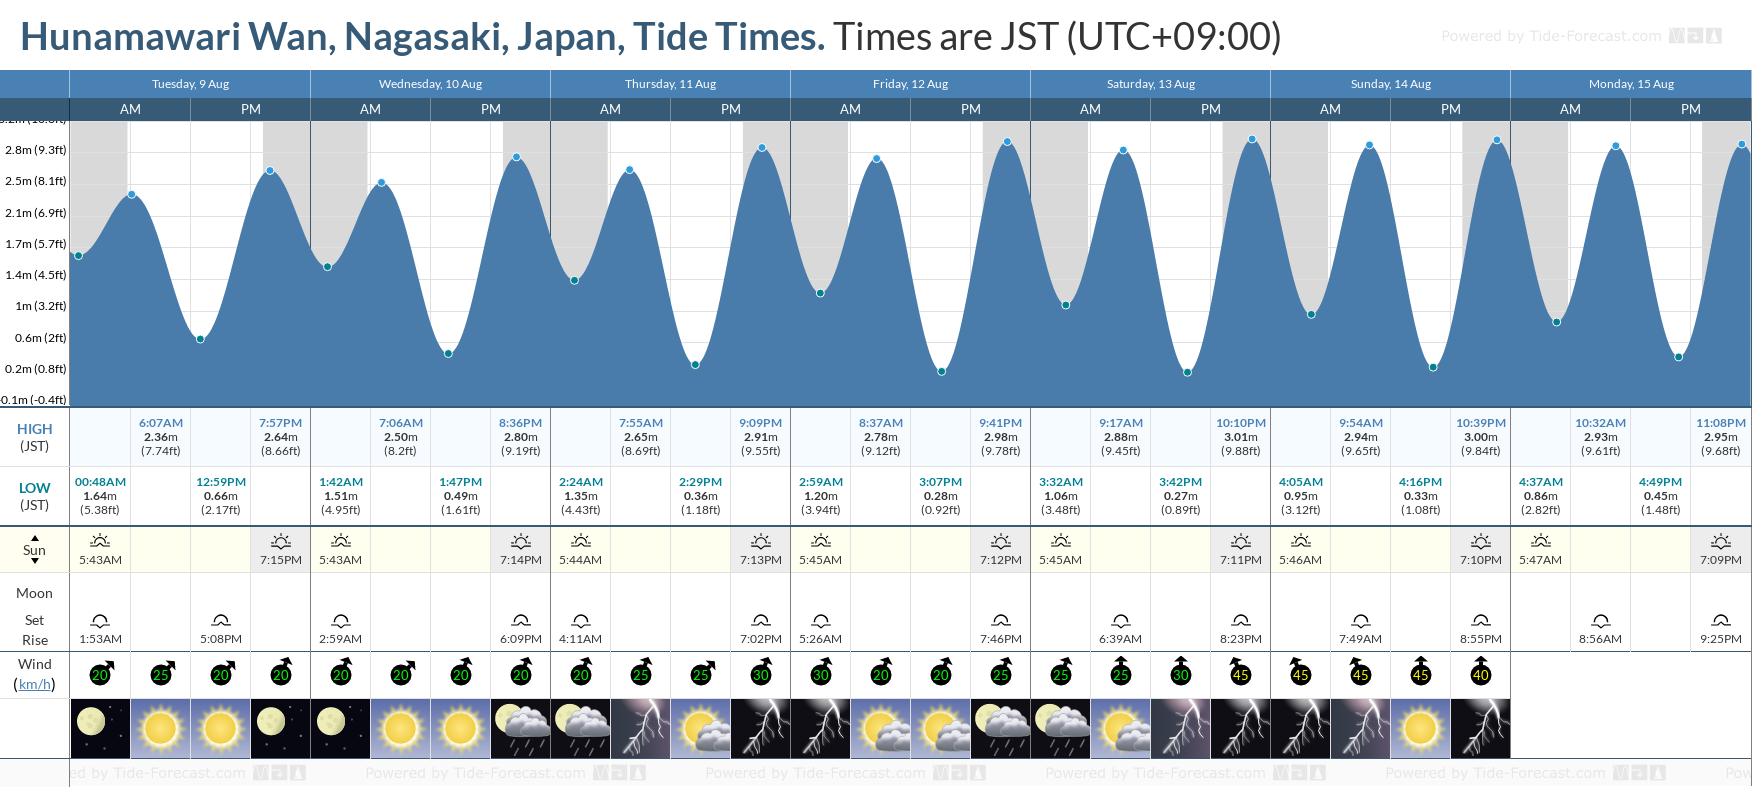 Hunamawari Wan, Nagasaki, Japan Tide Chart including high and low tide tide times for the next 7 days